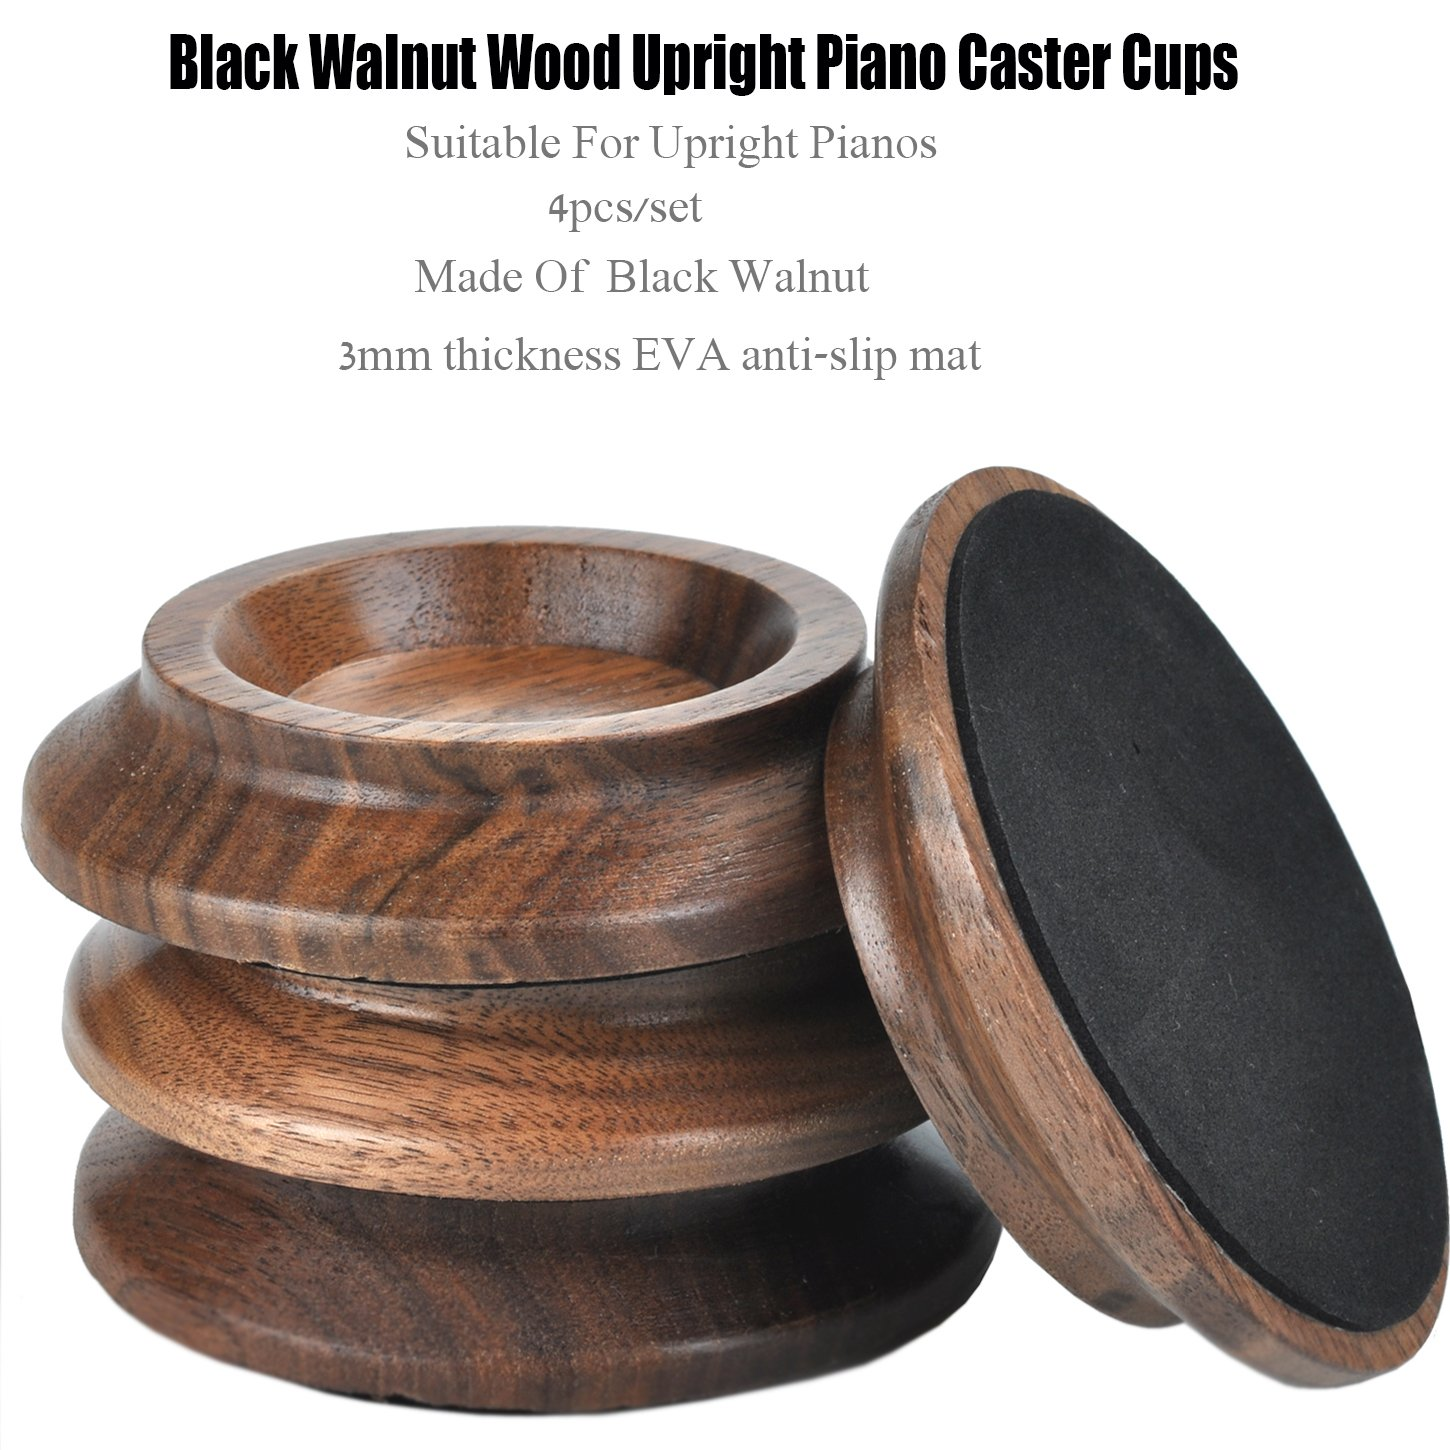 Upright Piano Caster Cups ,Solid Wood Furniture,Piano Caster Cups - Non-Slip & Anti-Noise Foam (black walnut) by WOGOD (Image #4)